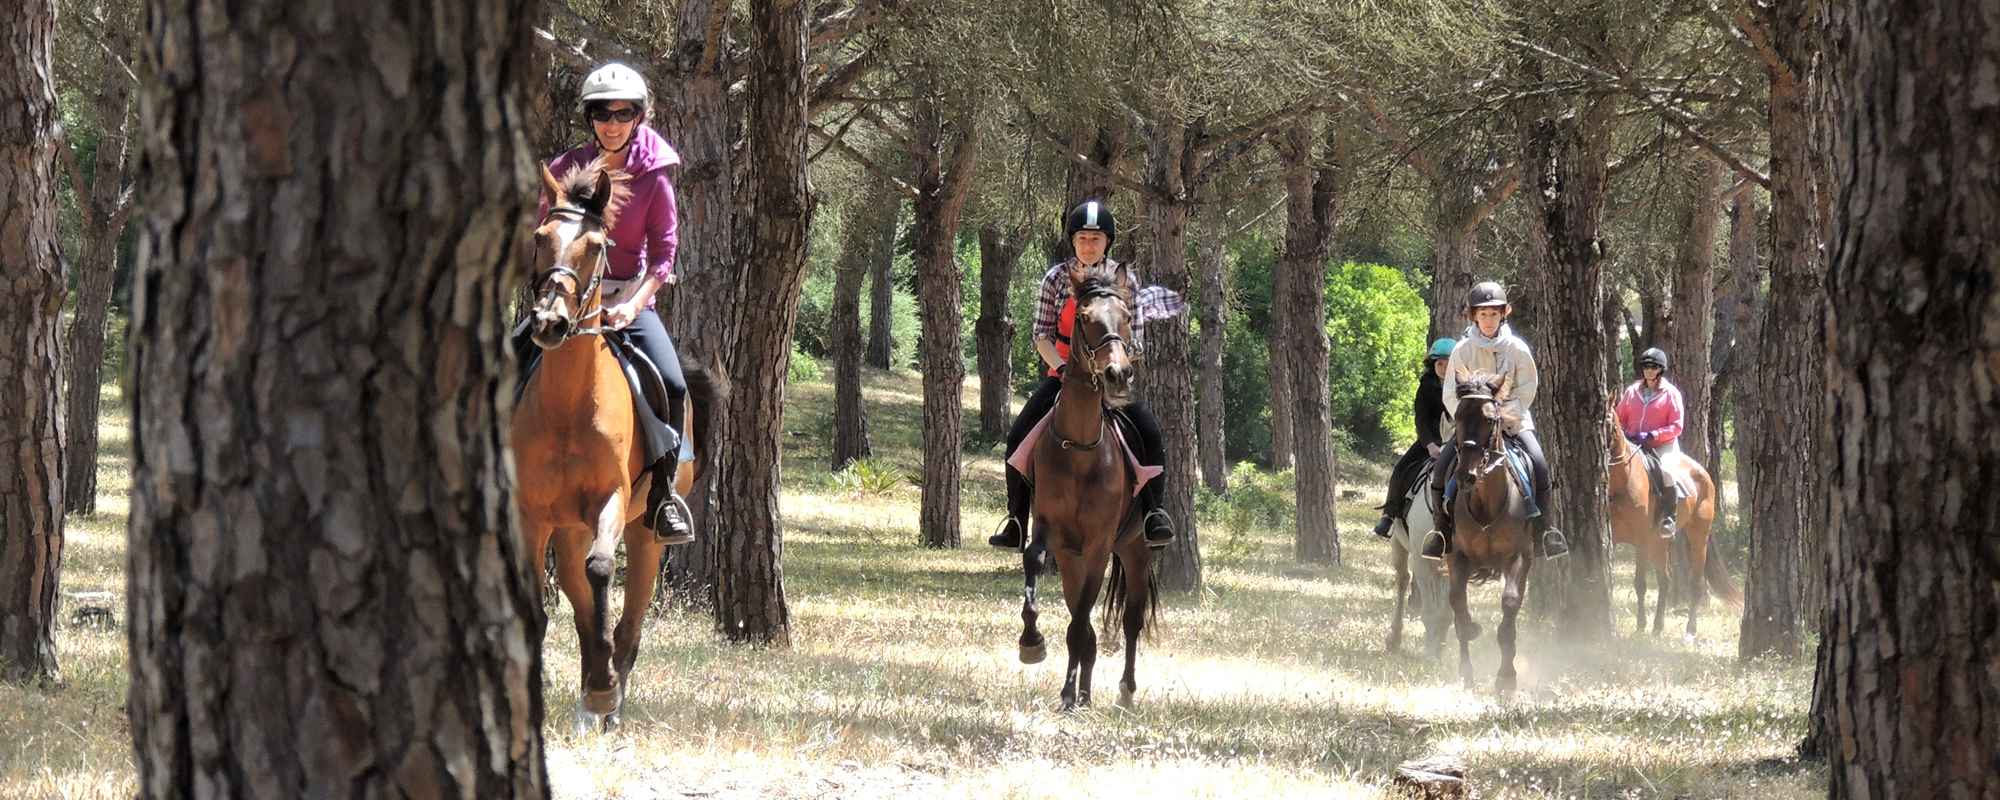 Unspoilt countryside for horse riding holidays